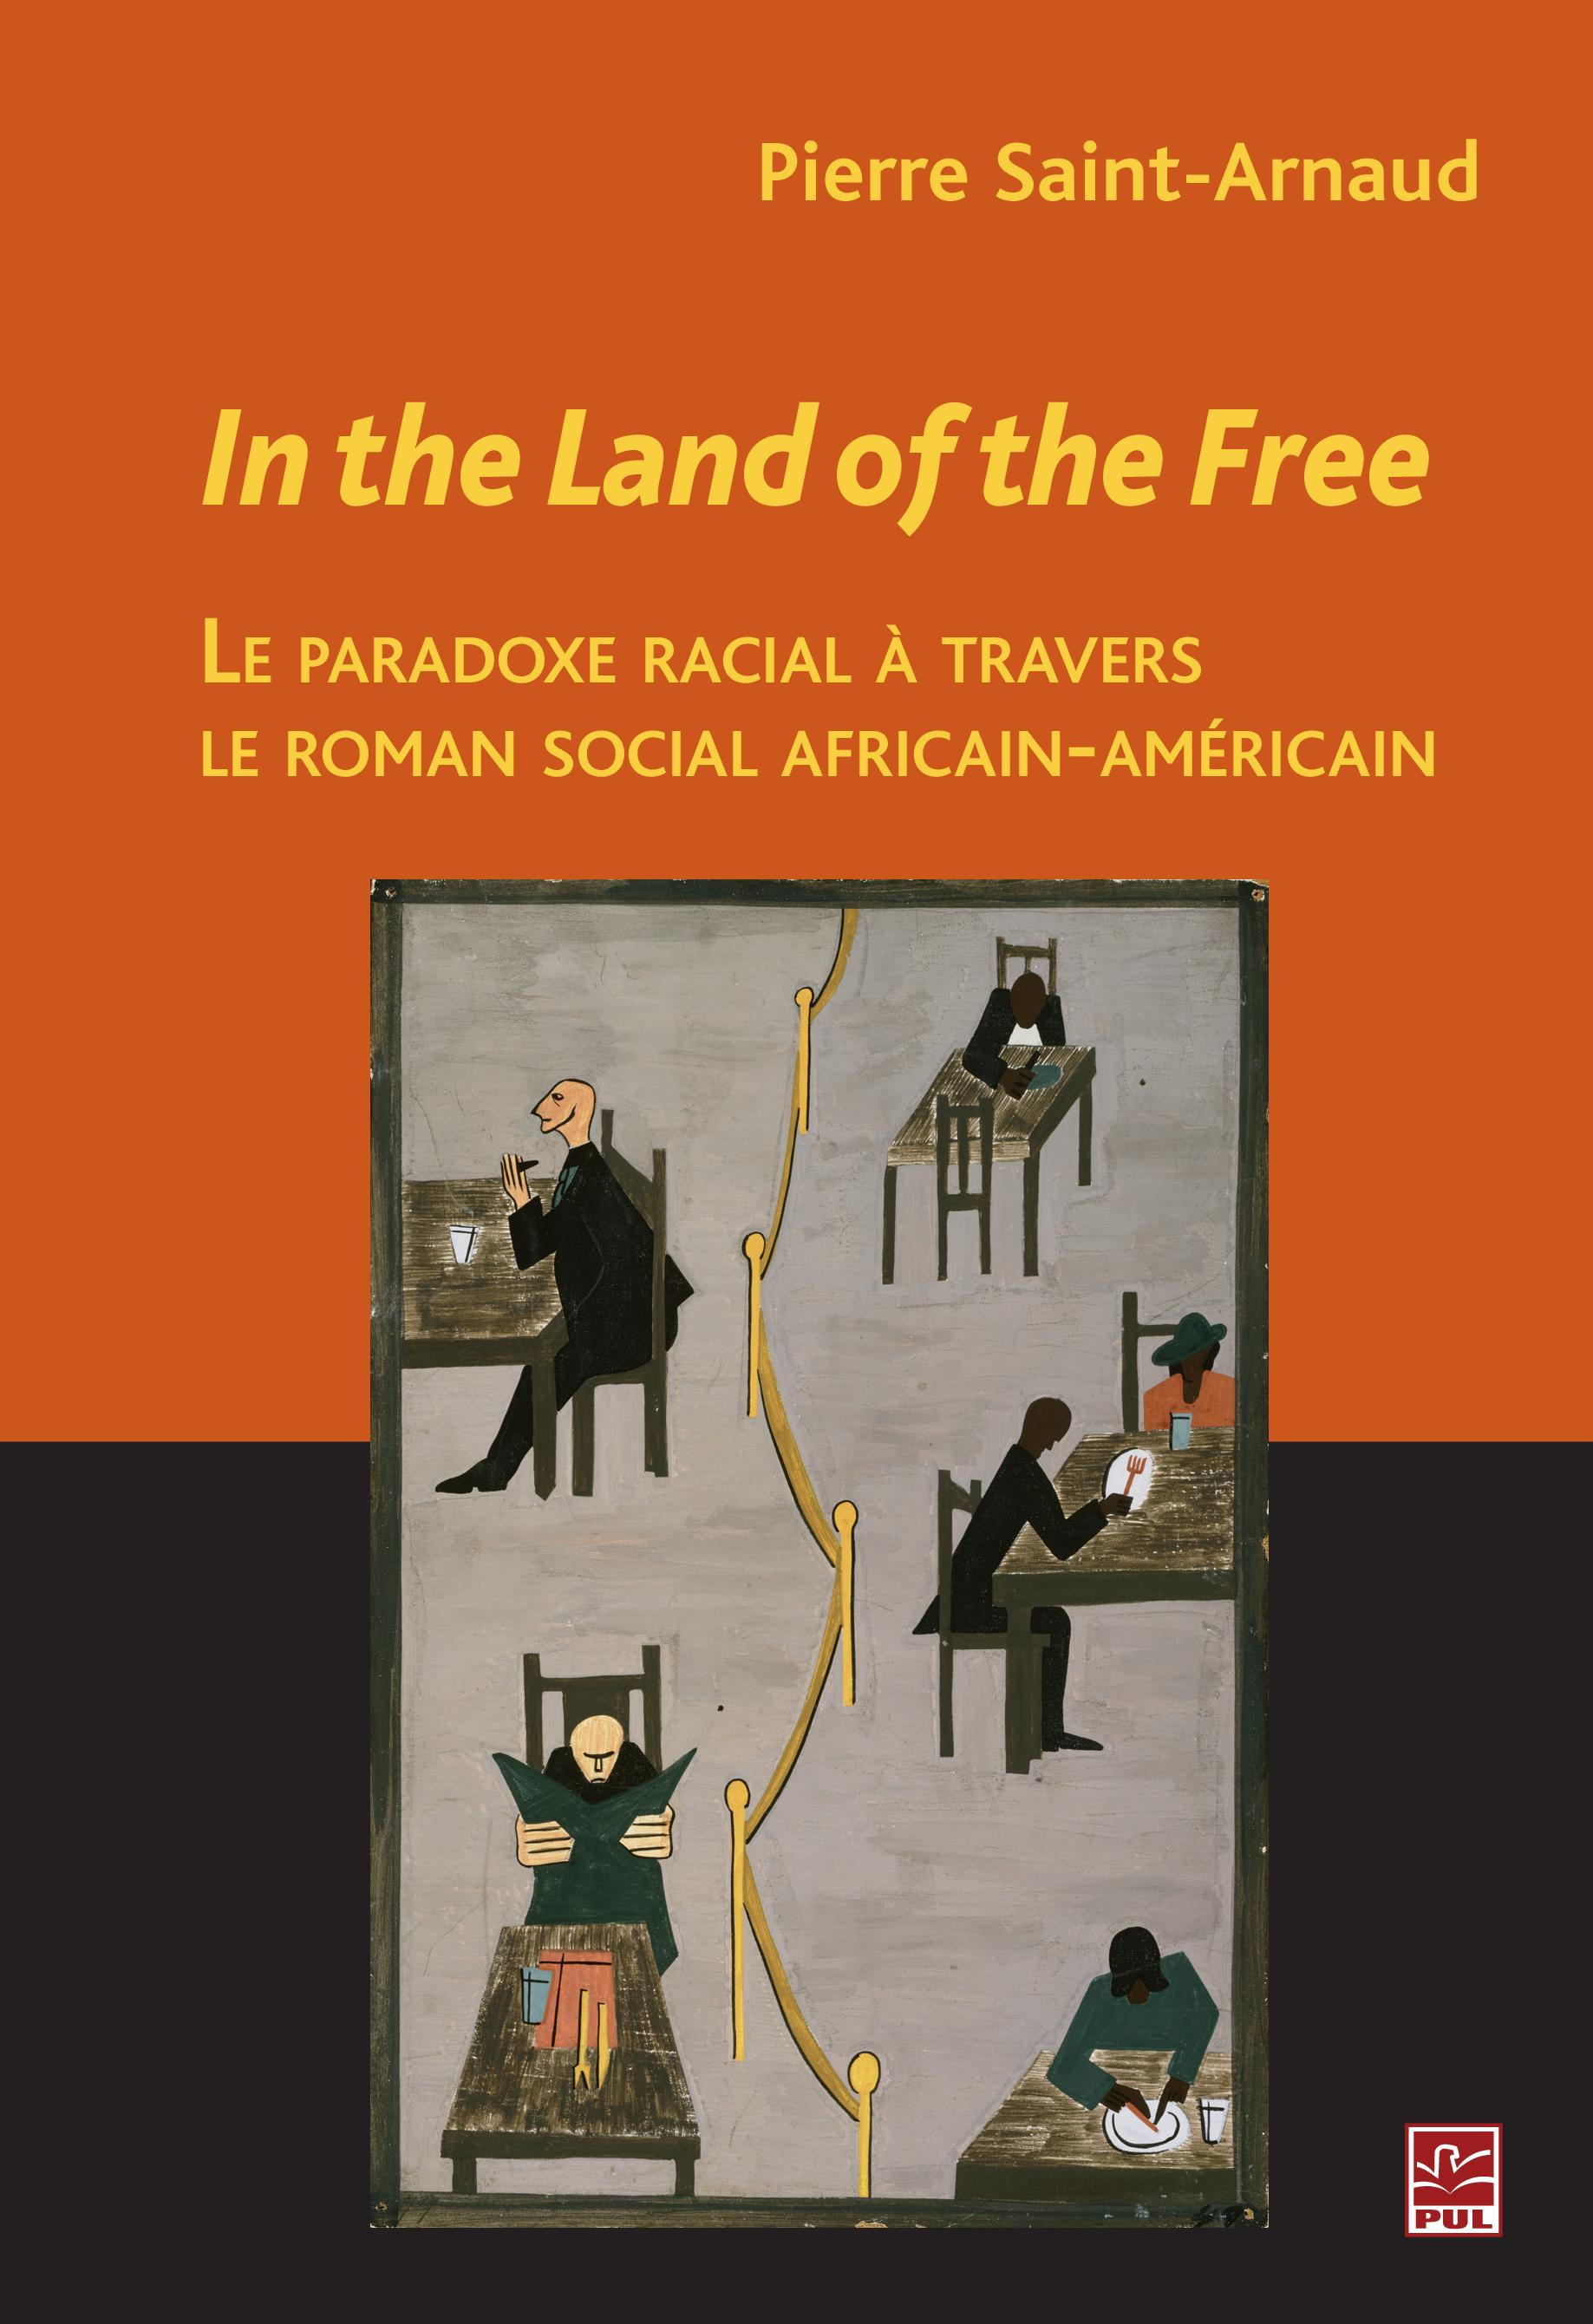 In the Land of the Free: le paradoxe racial - Pierre Saint-Arnaud